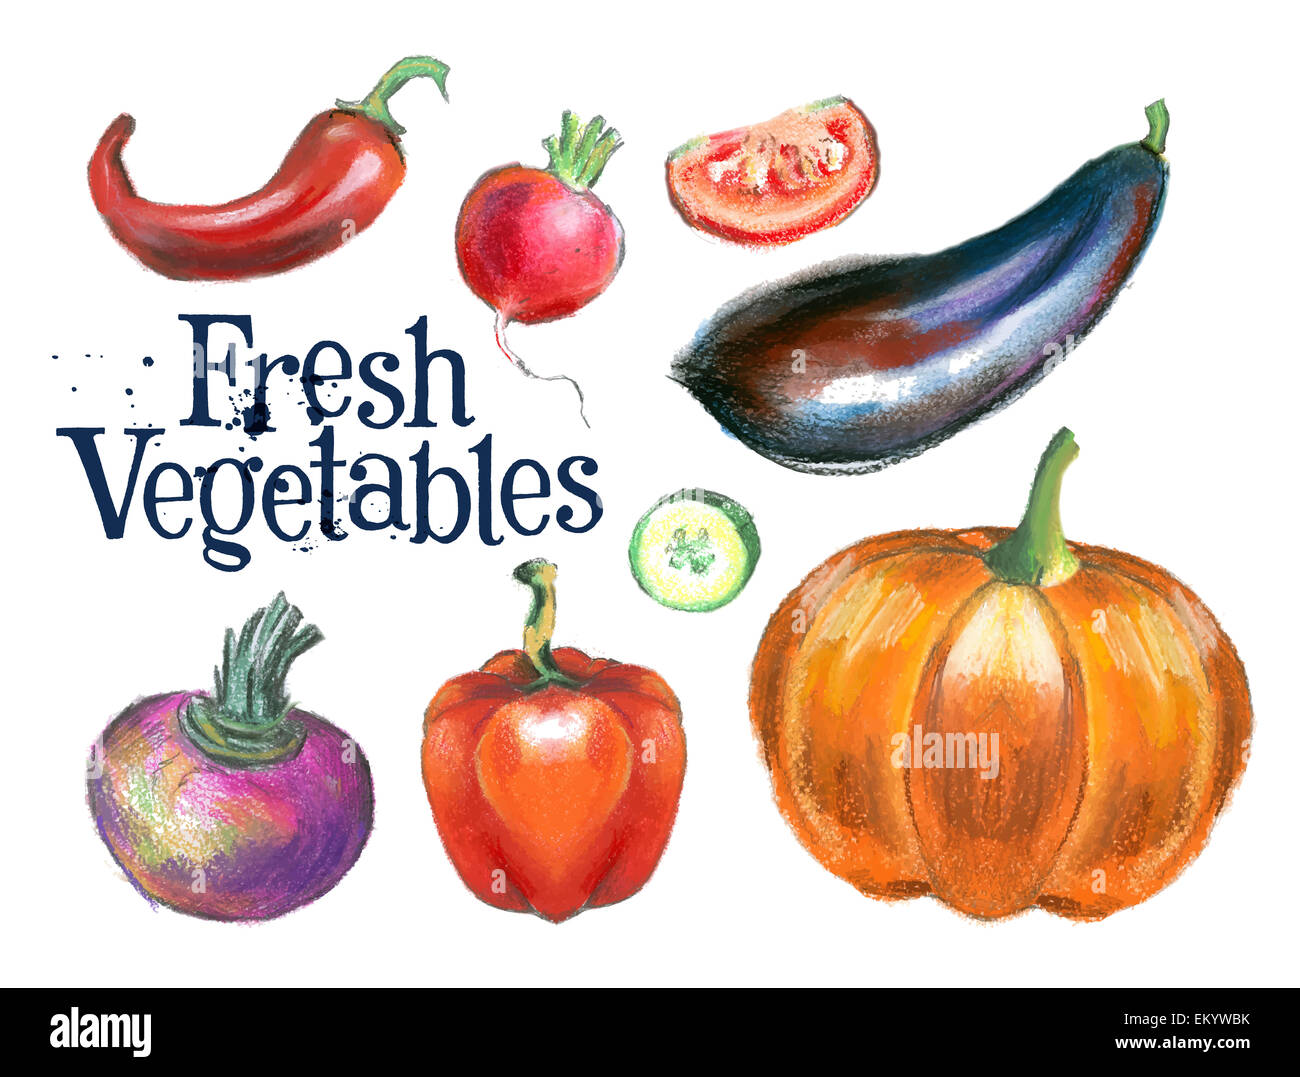 fresh vegetables vector logo design template food or gardening icon